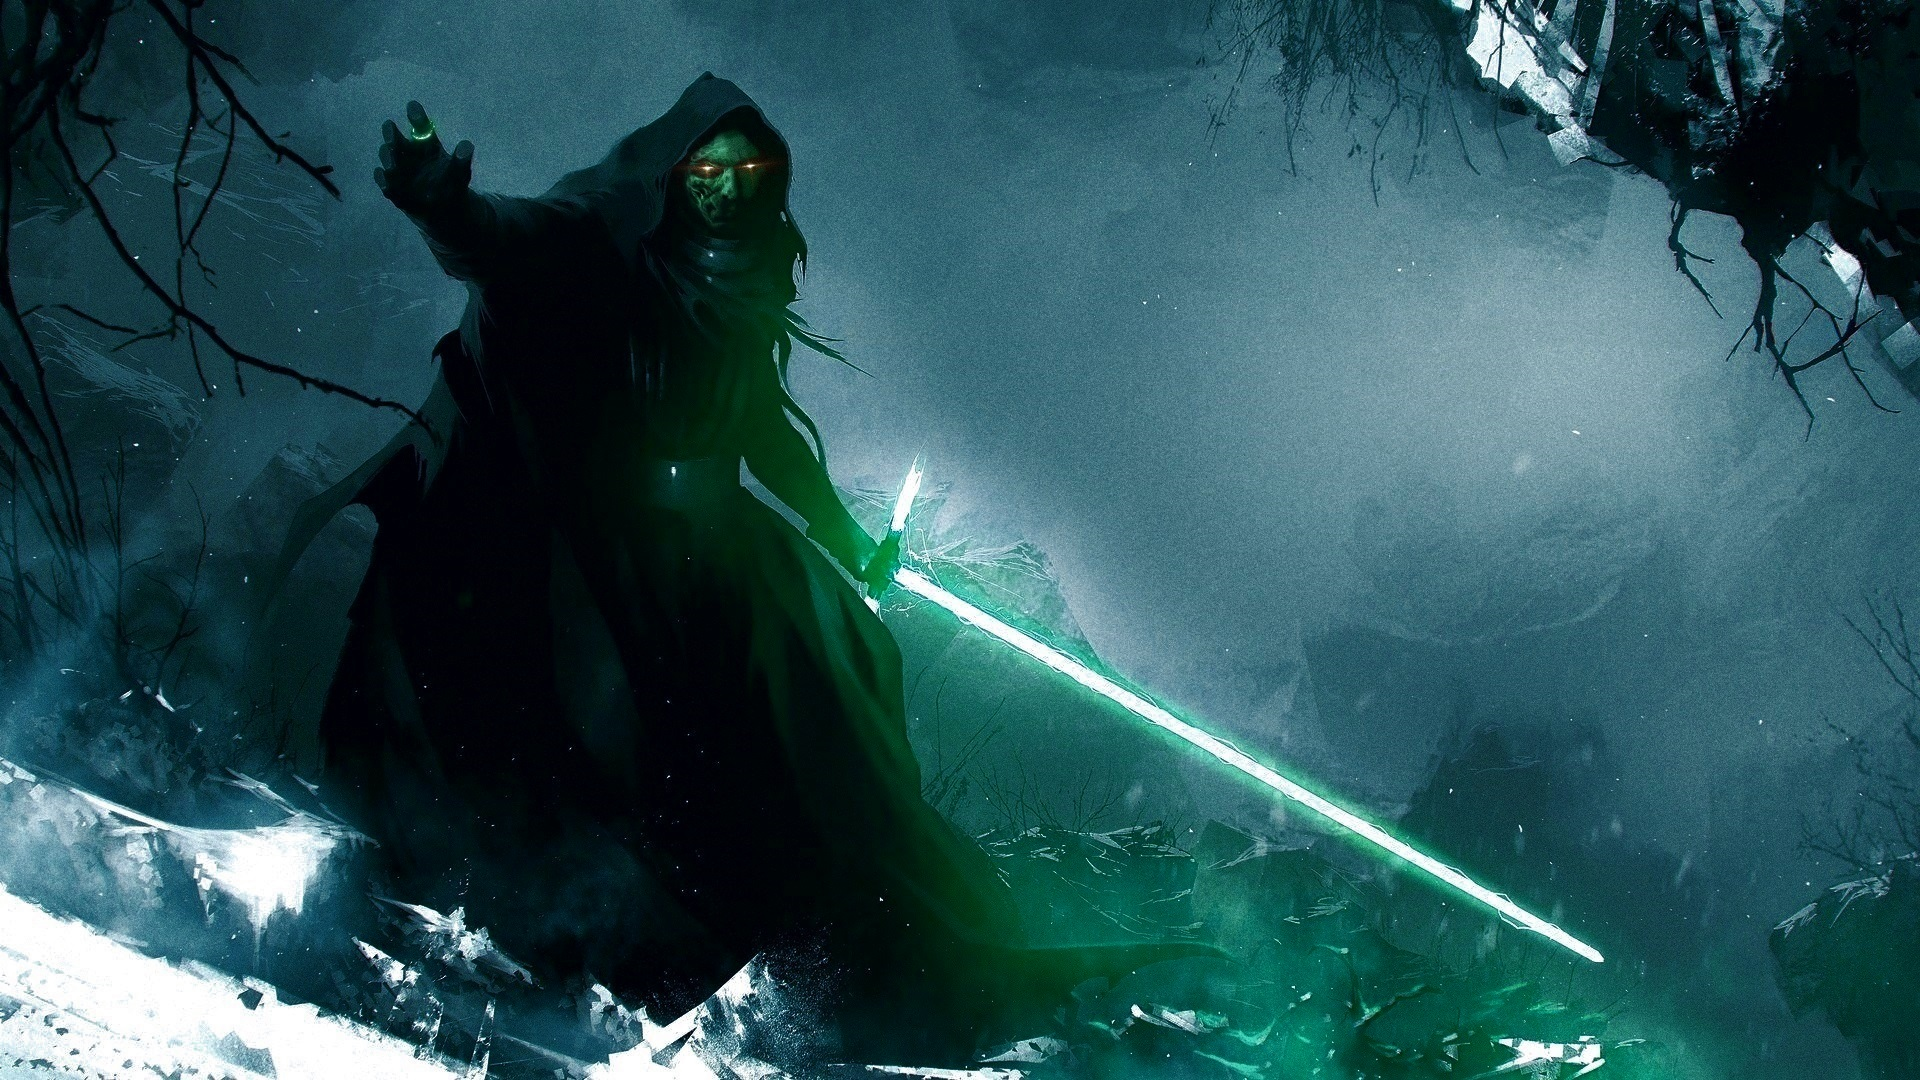 General 1920x1080 Star Wars Talion Nazgûl video games lightsaber corruption digital art artwork fantasy art The Lord of the Rings crossover Middle-Earth: Shadow of War Middle Earth Shadow of War